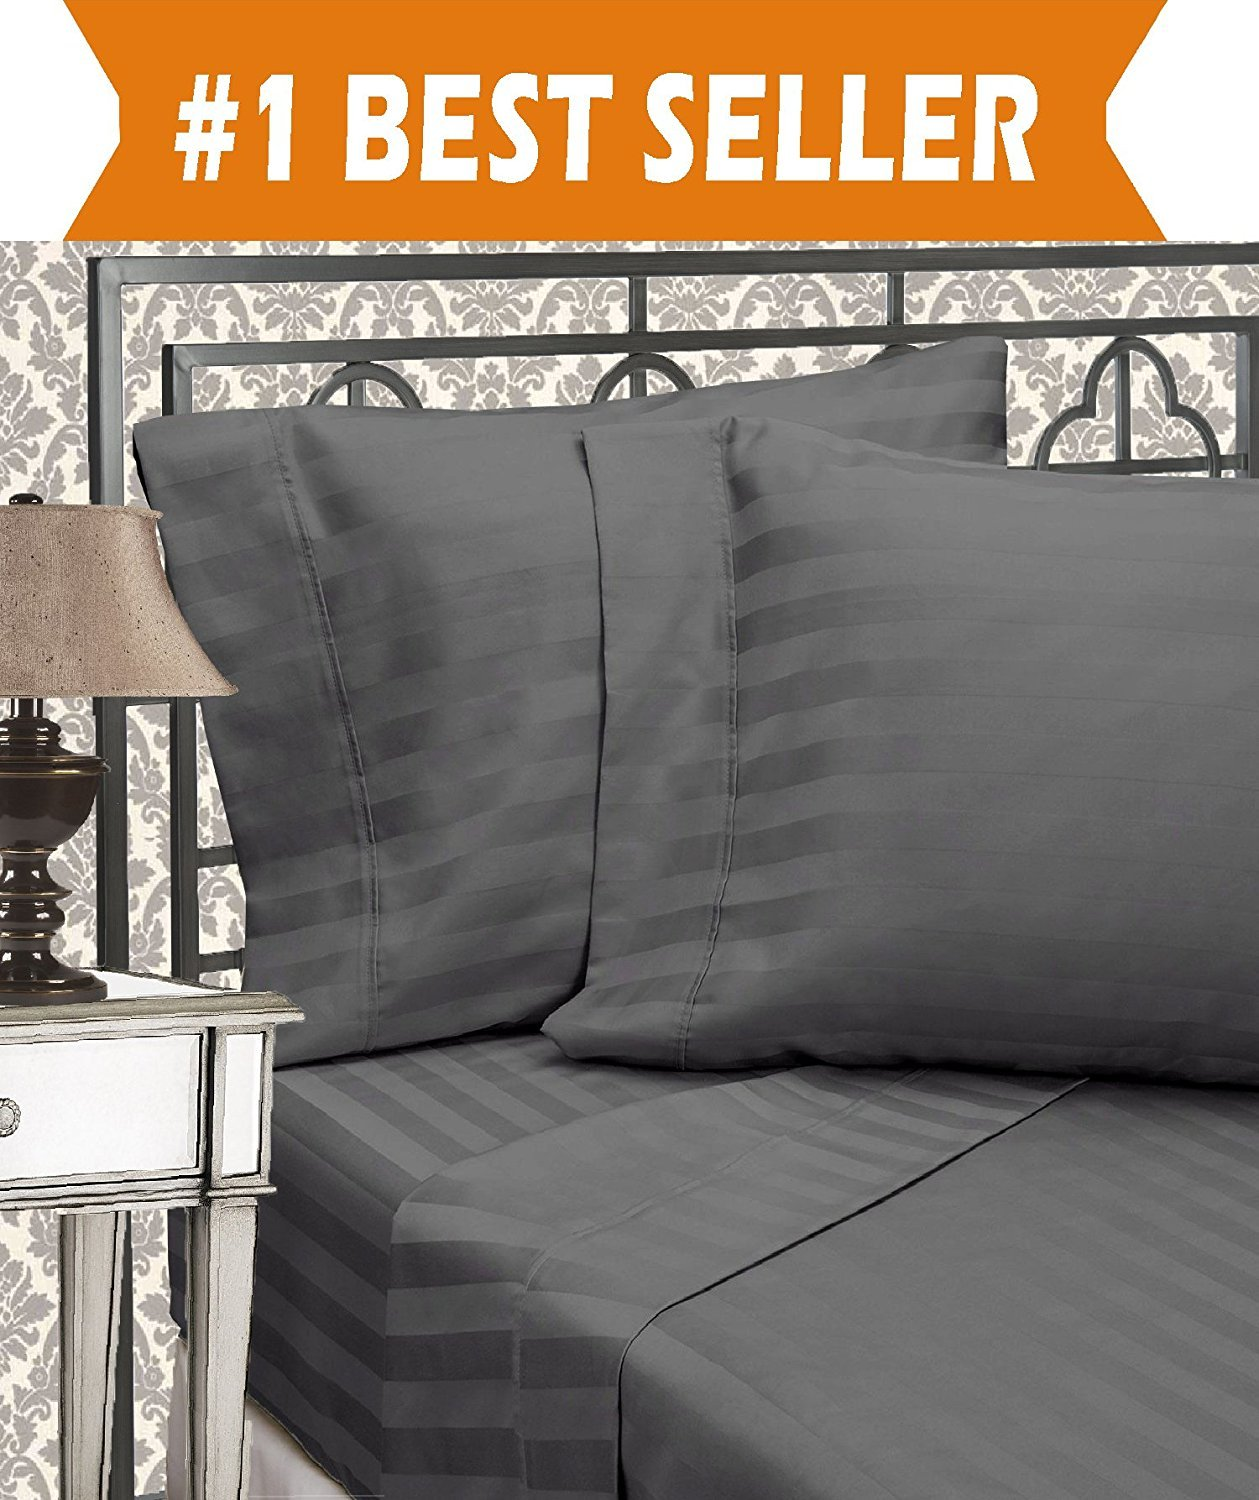 Egyptian Quality Luxurious Wrinkle Resistant 6-Piece DAMASK STRIPE Bed Sheet Set, King Grey